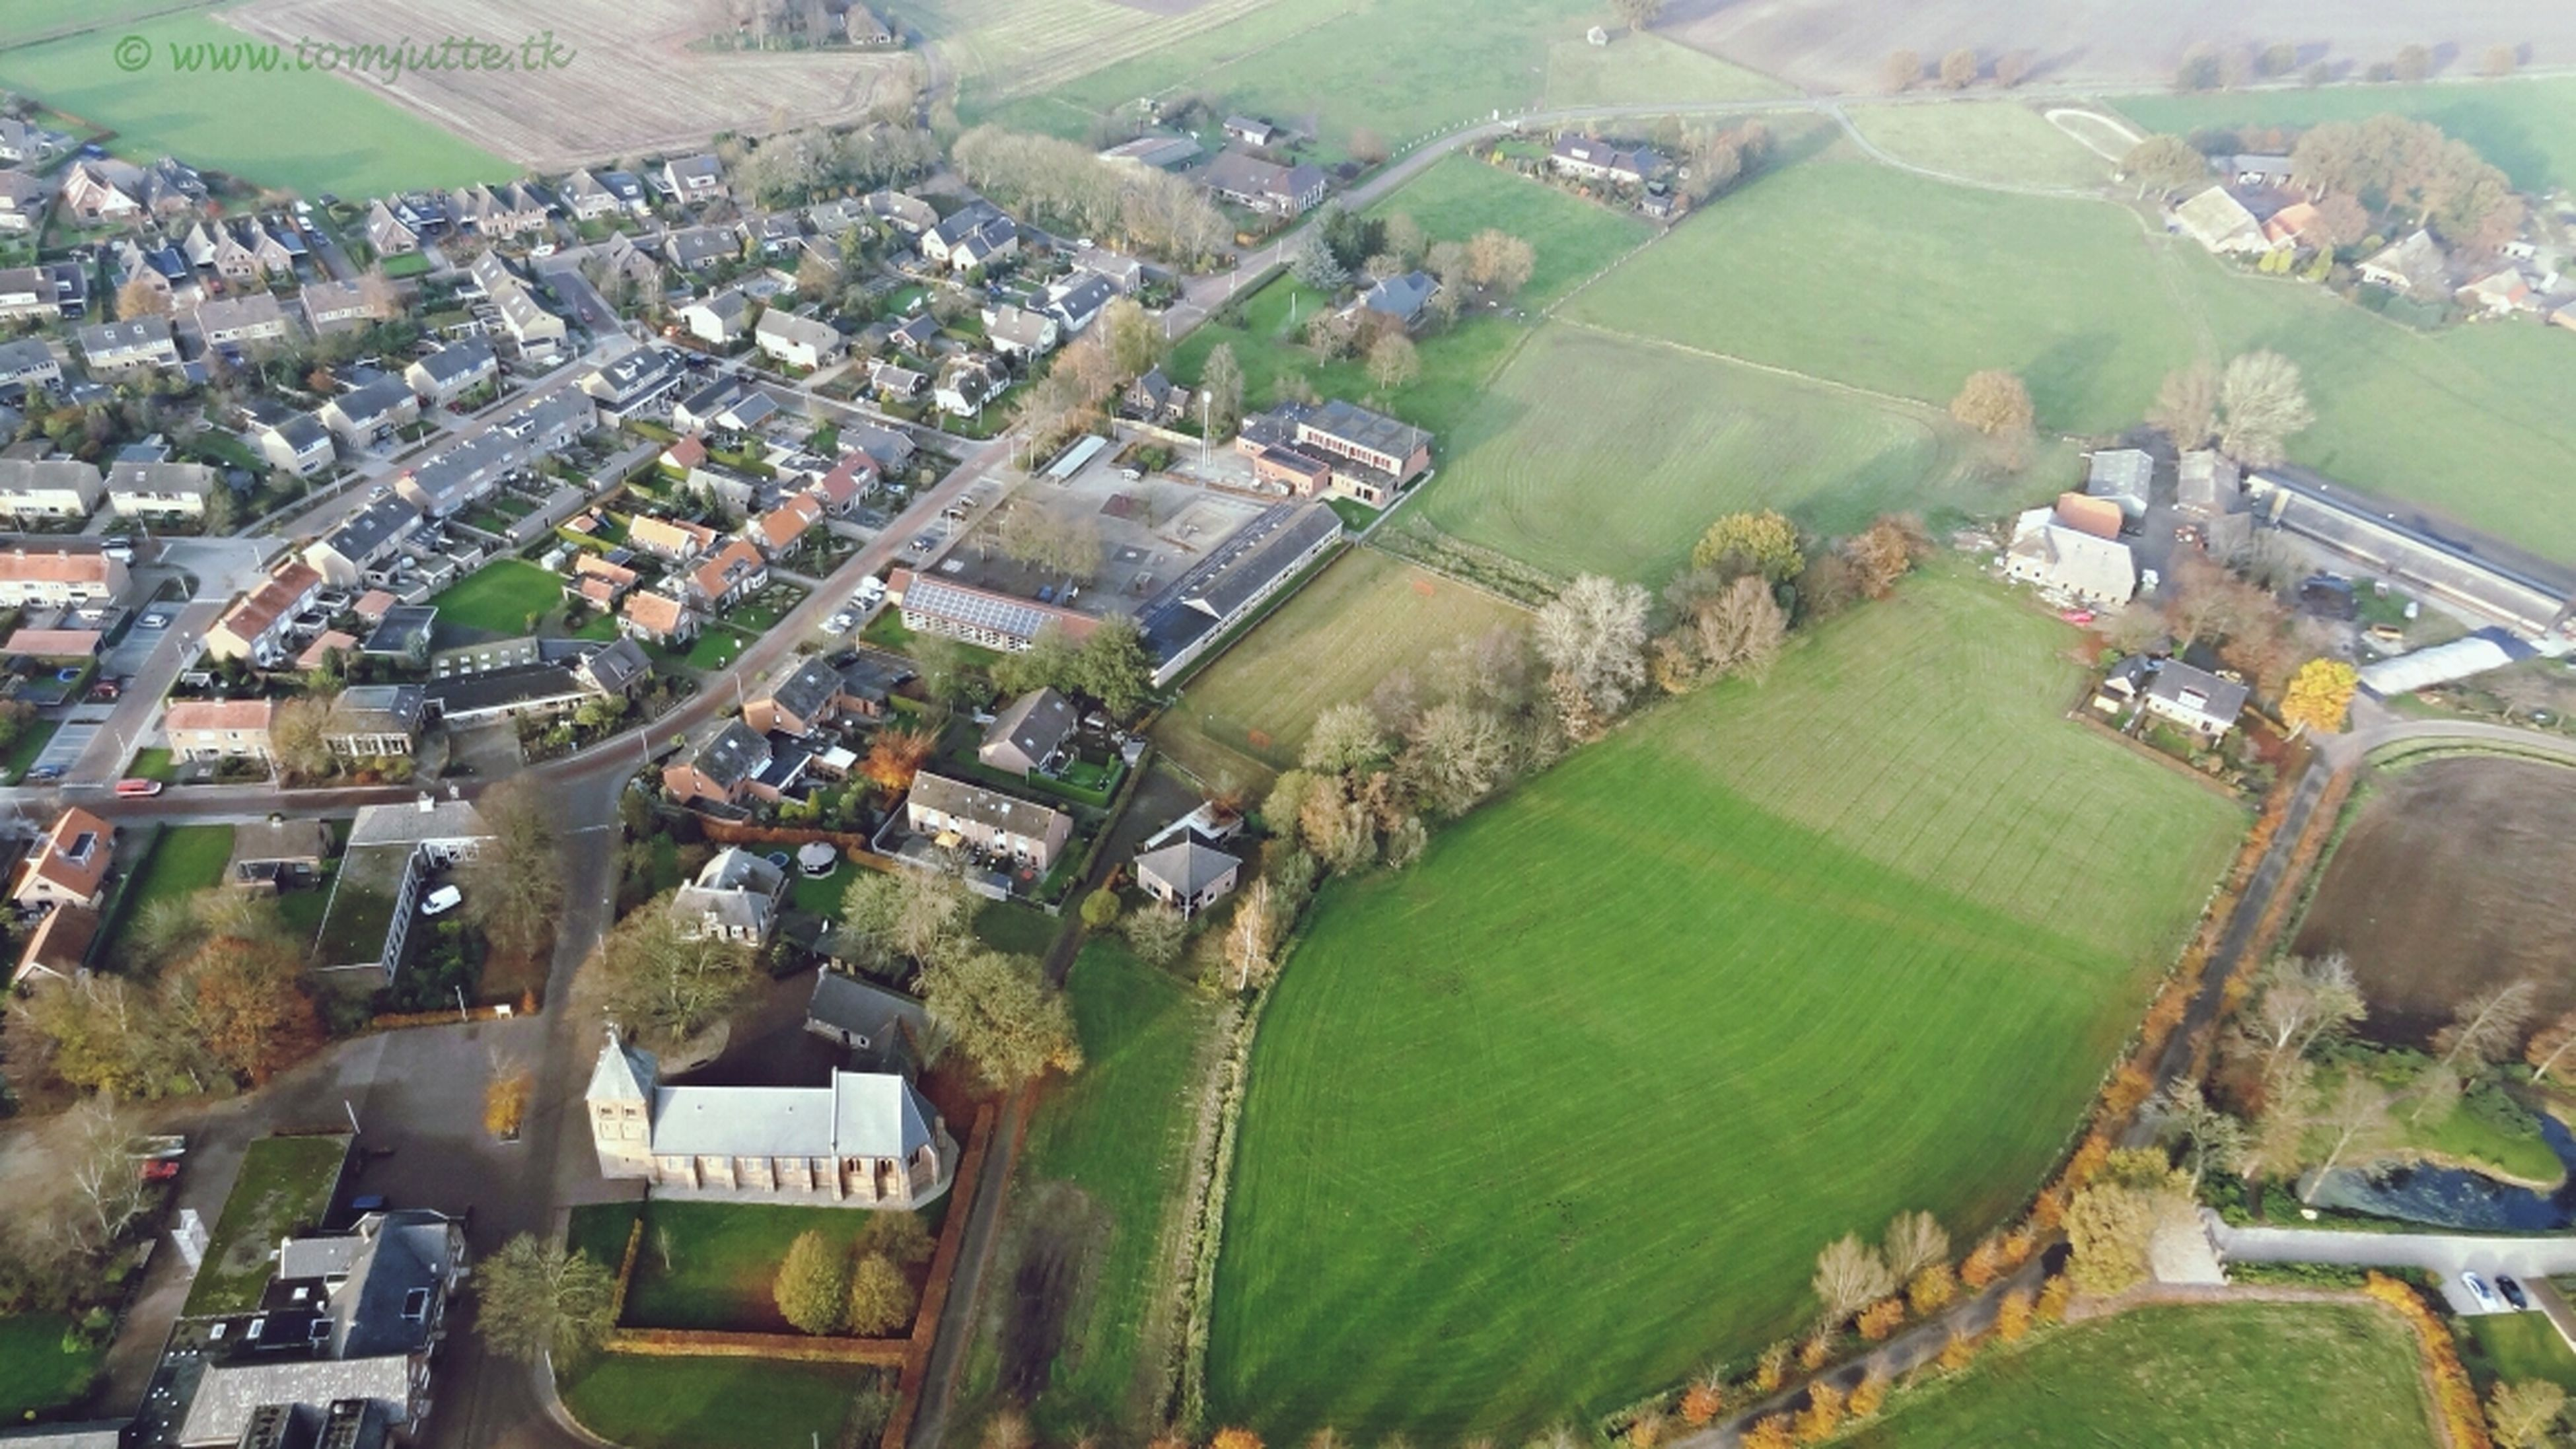 high angle view, landscape, building exterior, aerial view, built structure, architecture, agriculture, green color, cityscape, rural scene, farm, field, residential district, city, tree, crowded, house, nature, mountain, residential building